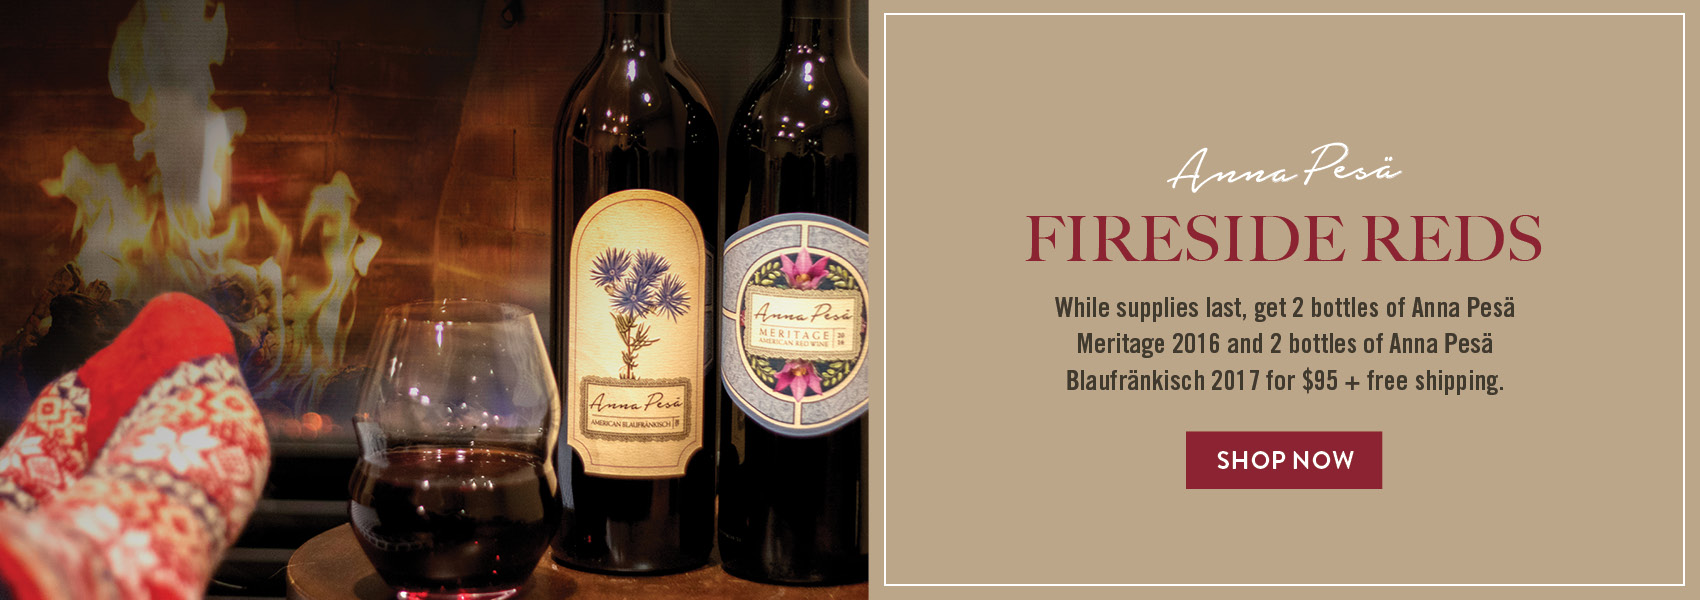 Get four bottles of Anna Pesa red wine and free shipping for just $95